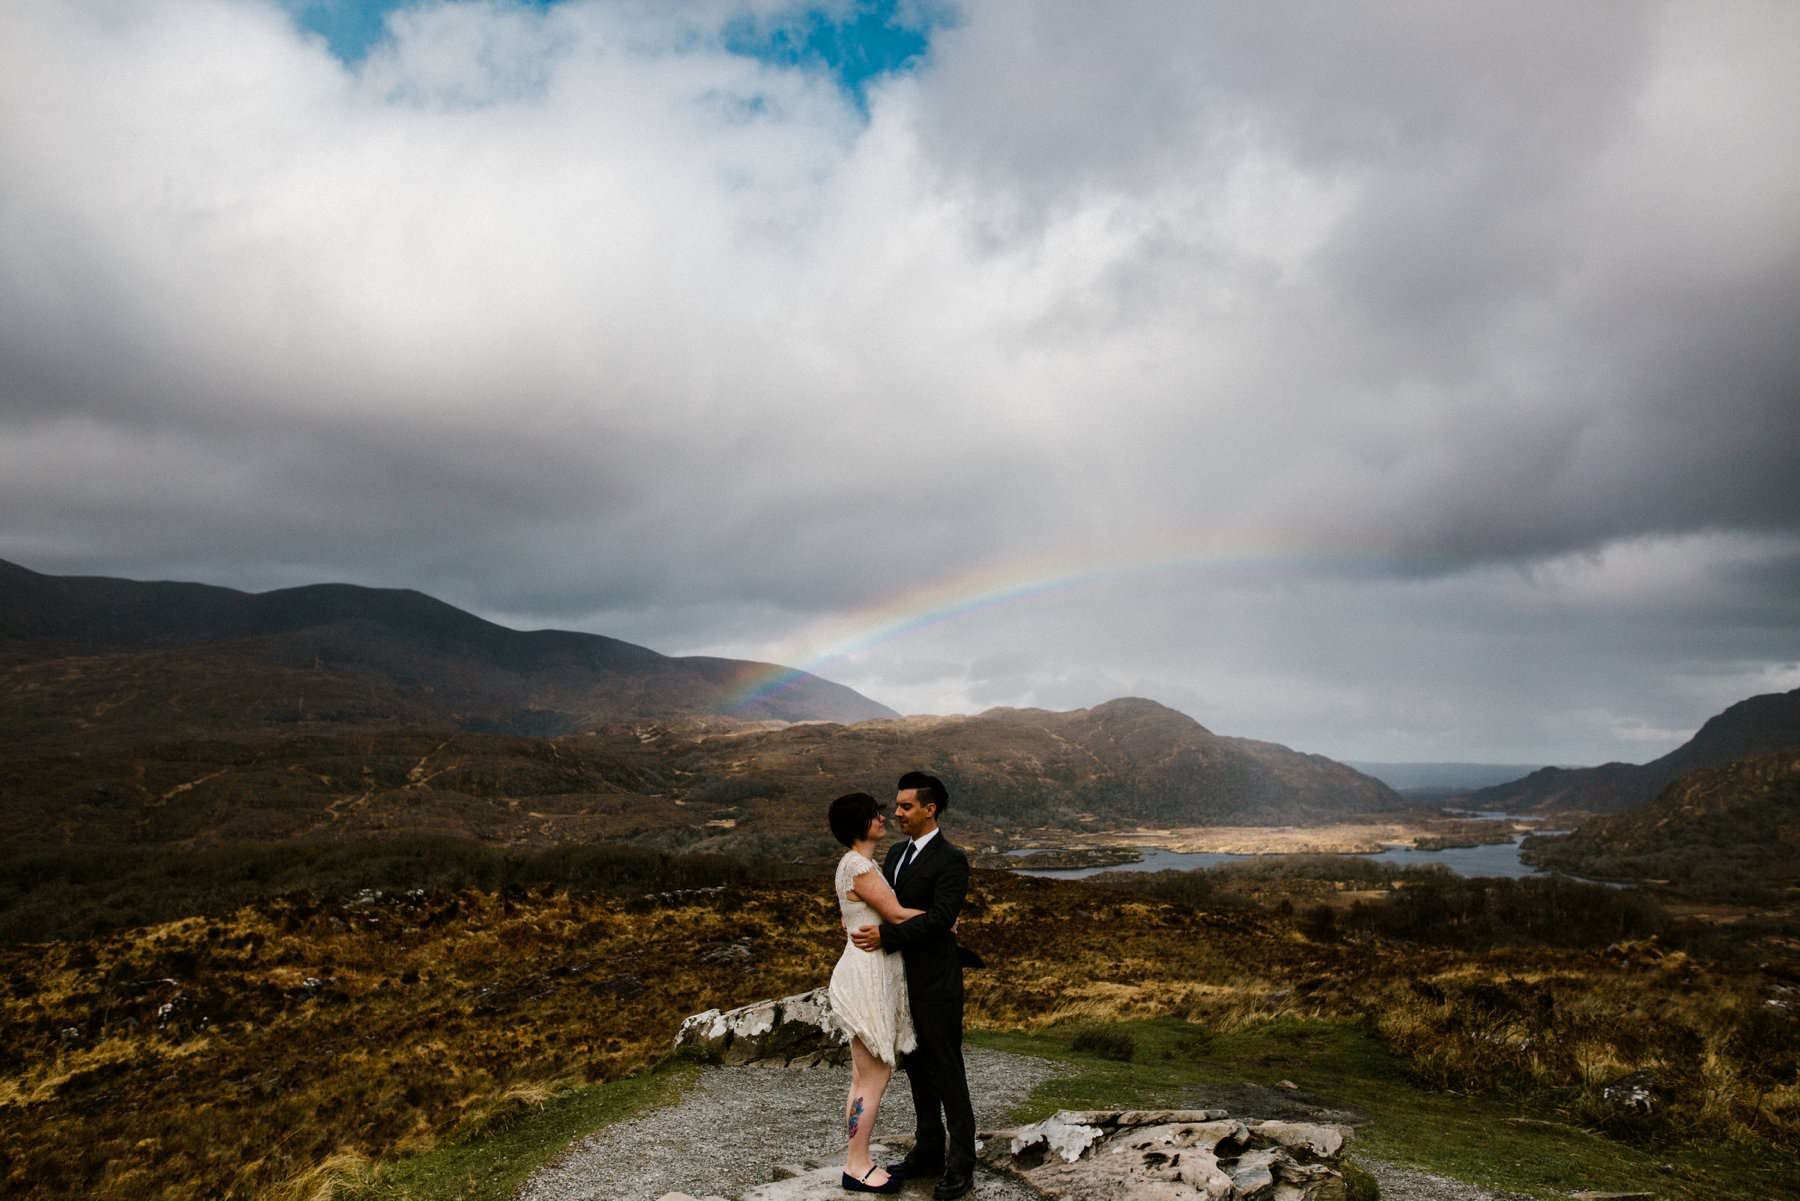 epic wedding photographers ireland